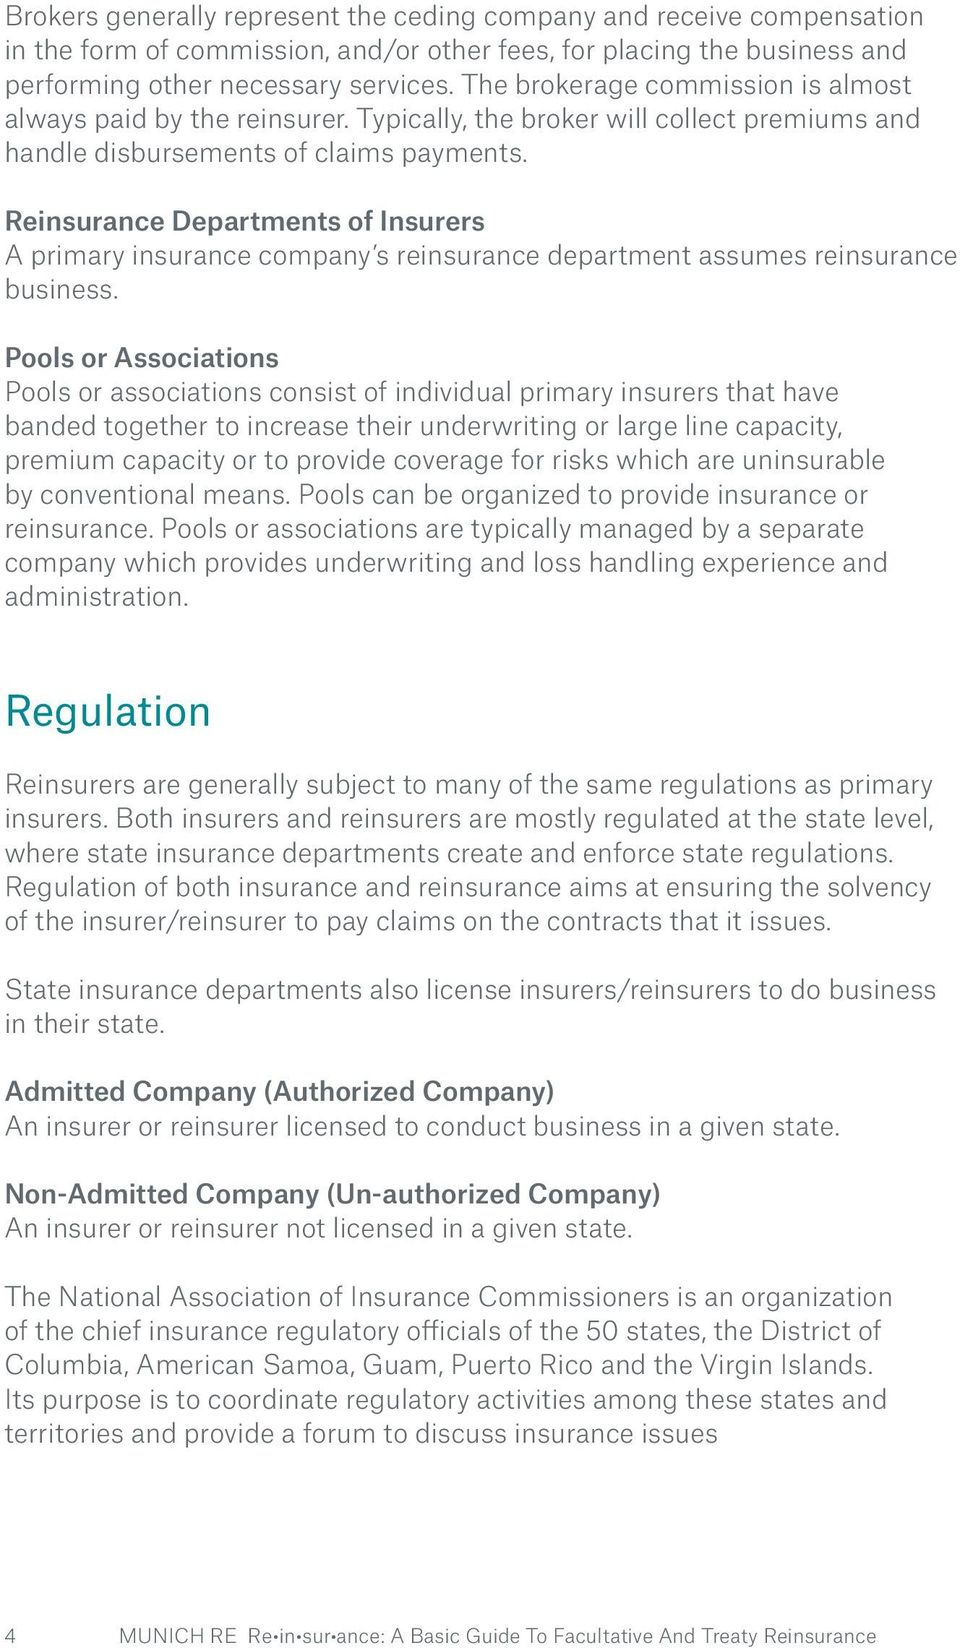 Reinsurance Departments of Insurers A primary insurance company s reinsurance department assumes reinsurance business.